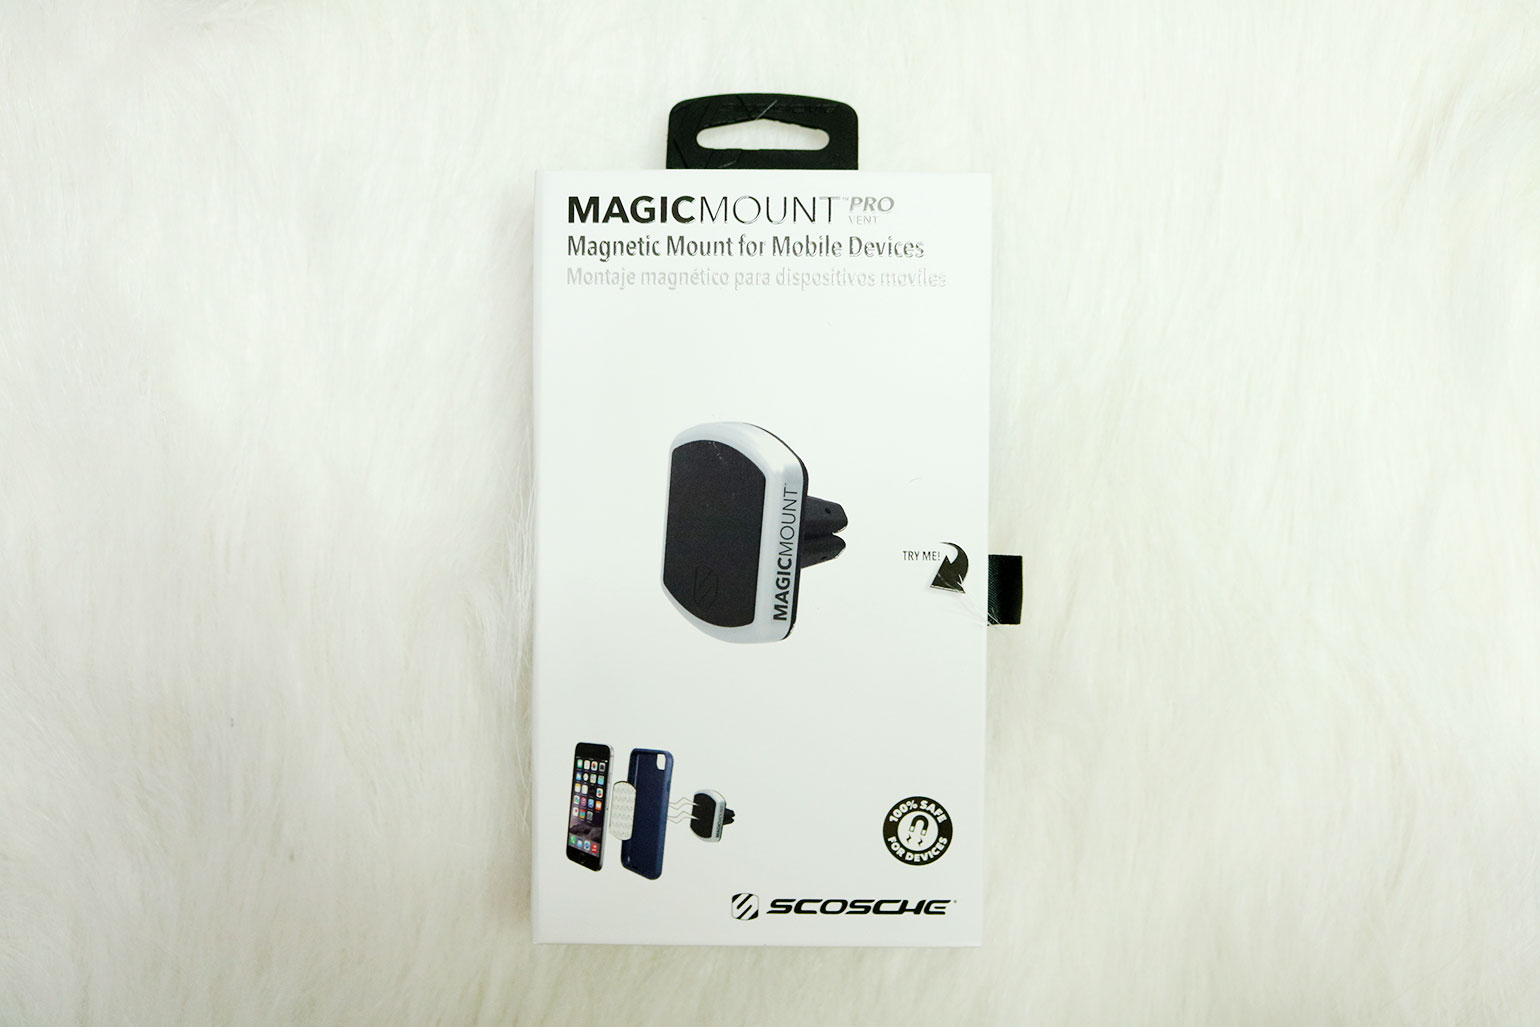 8 Digital Walker Products Review - Scosche Magic Mount Pro - Gen-zel.com (c)